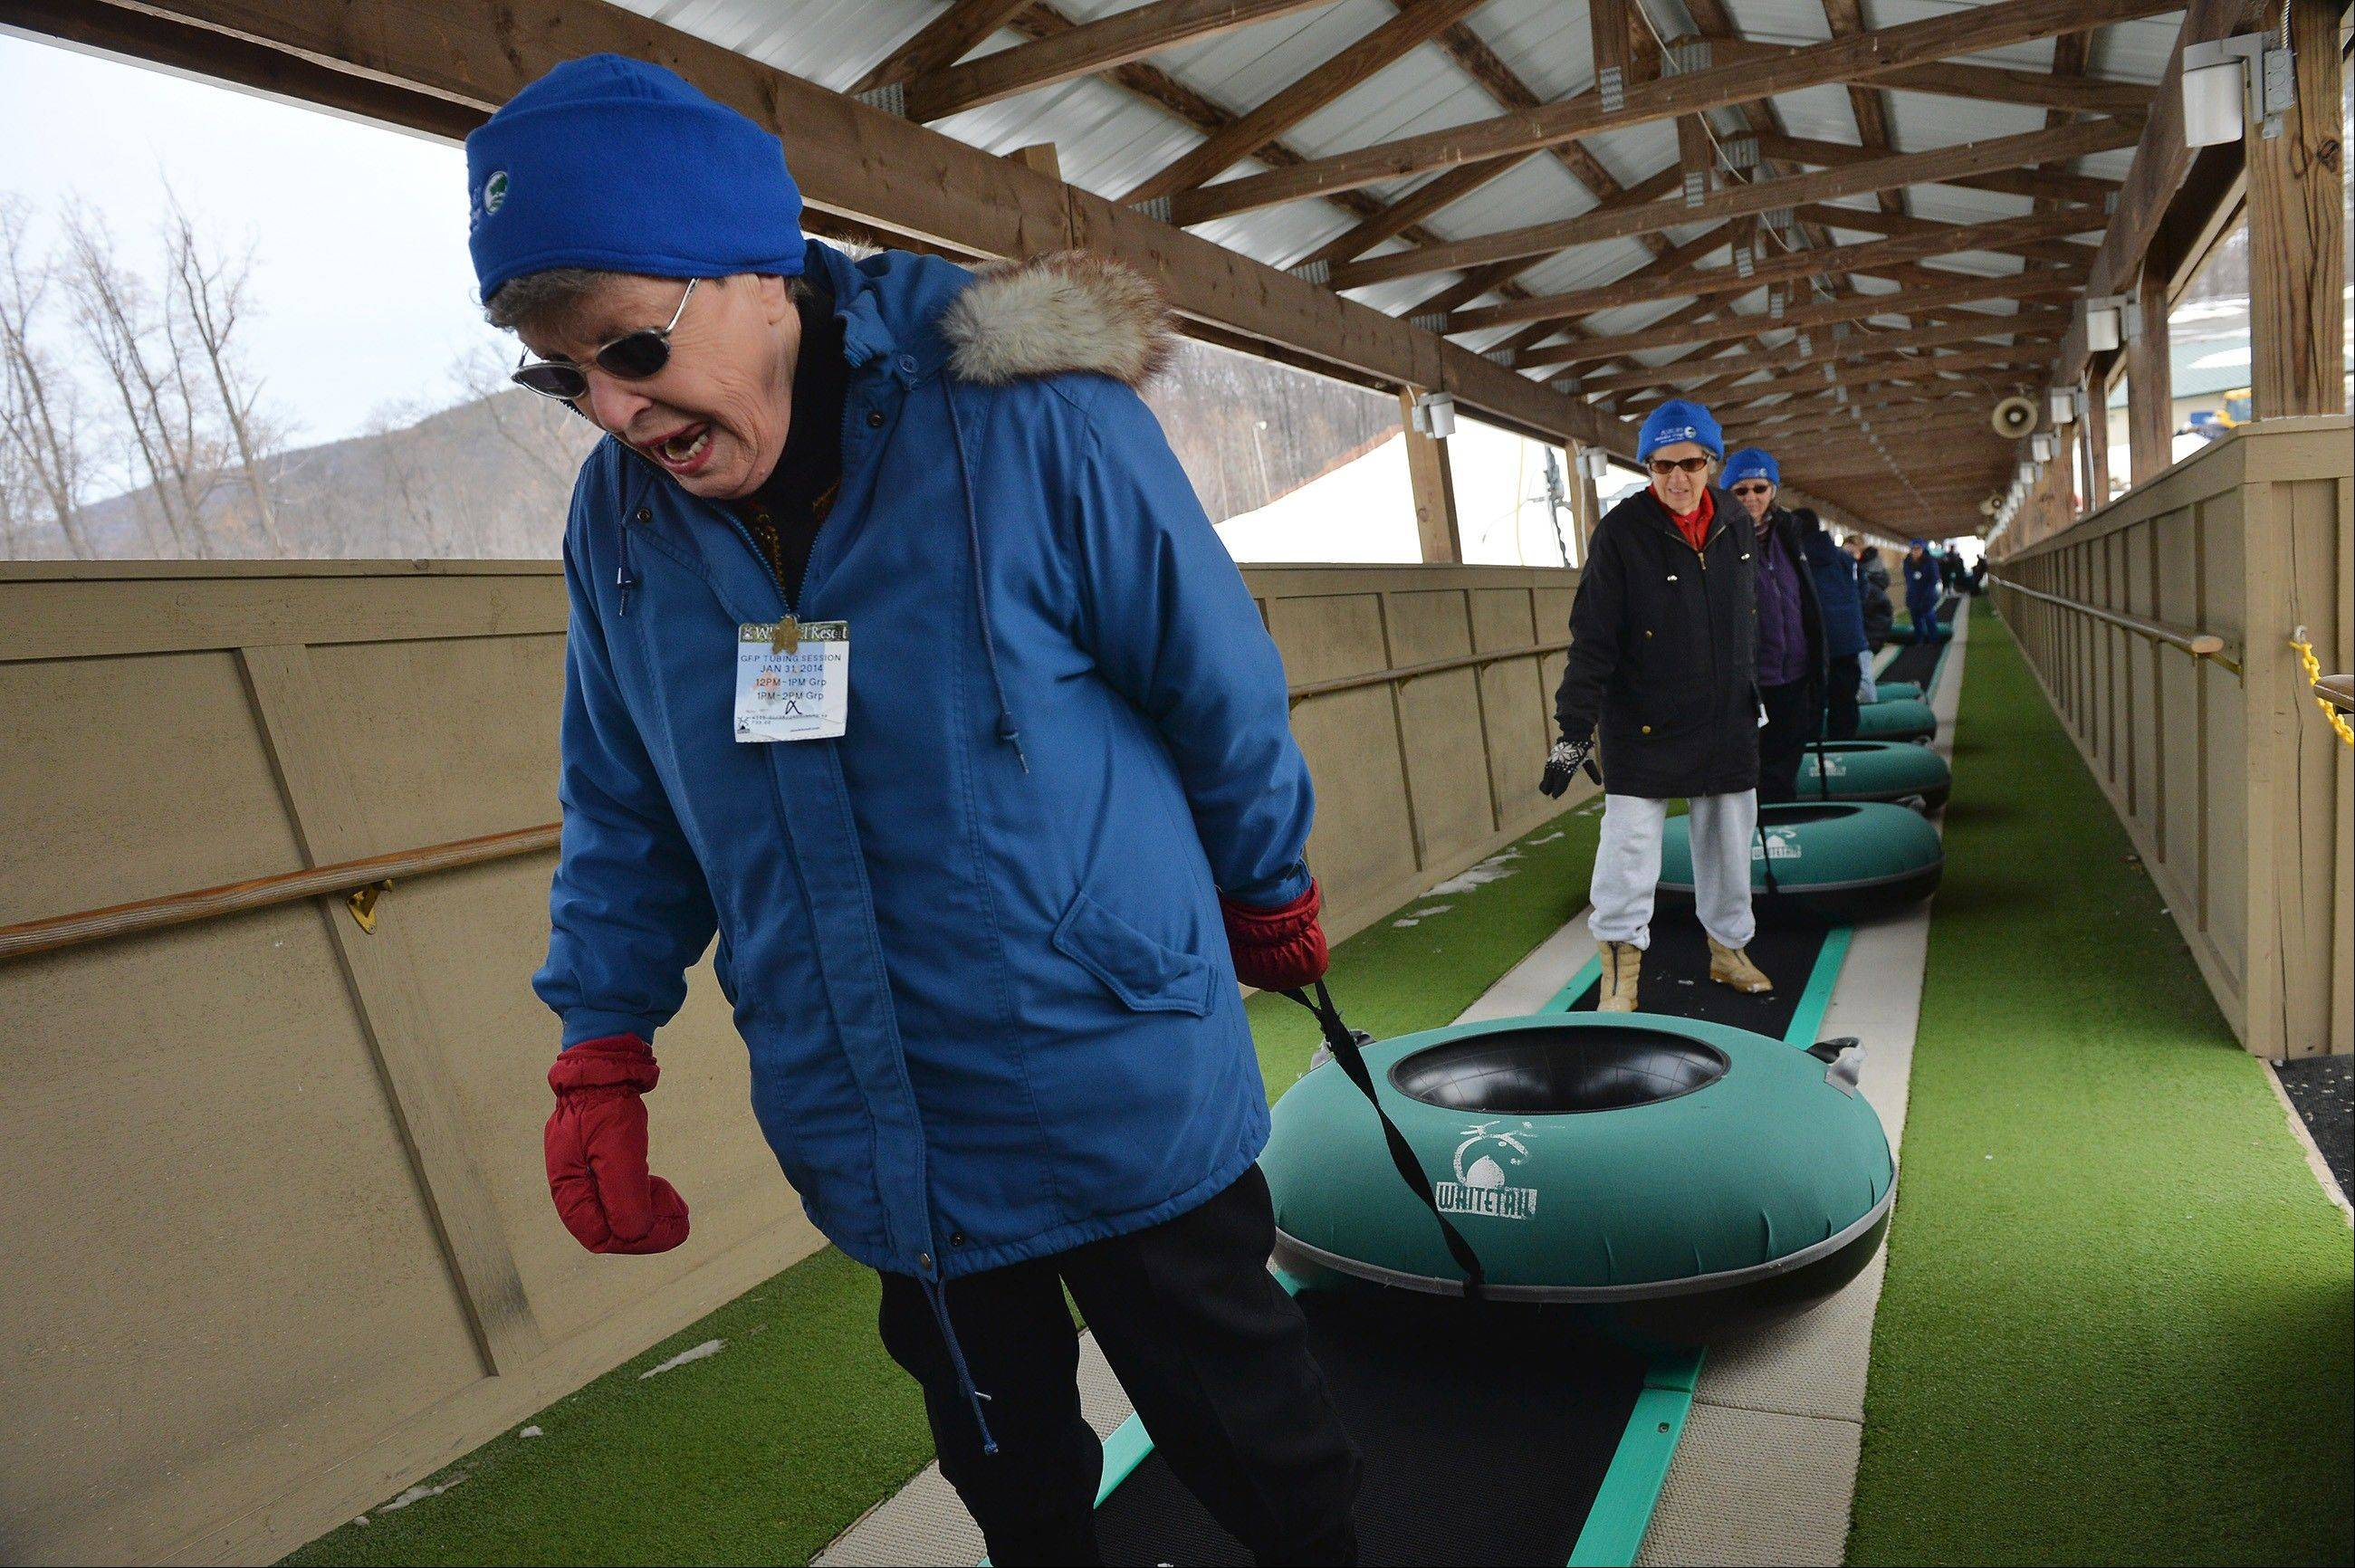 Jan Lafleur, 82, rides a conveyor belt up a hill on Jan. 31, at Whitetail Resort in Mercersburg, Pa. before sliding back down the slope on a snow tube.